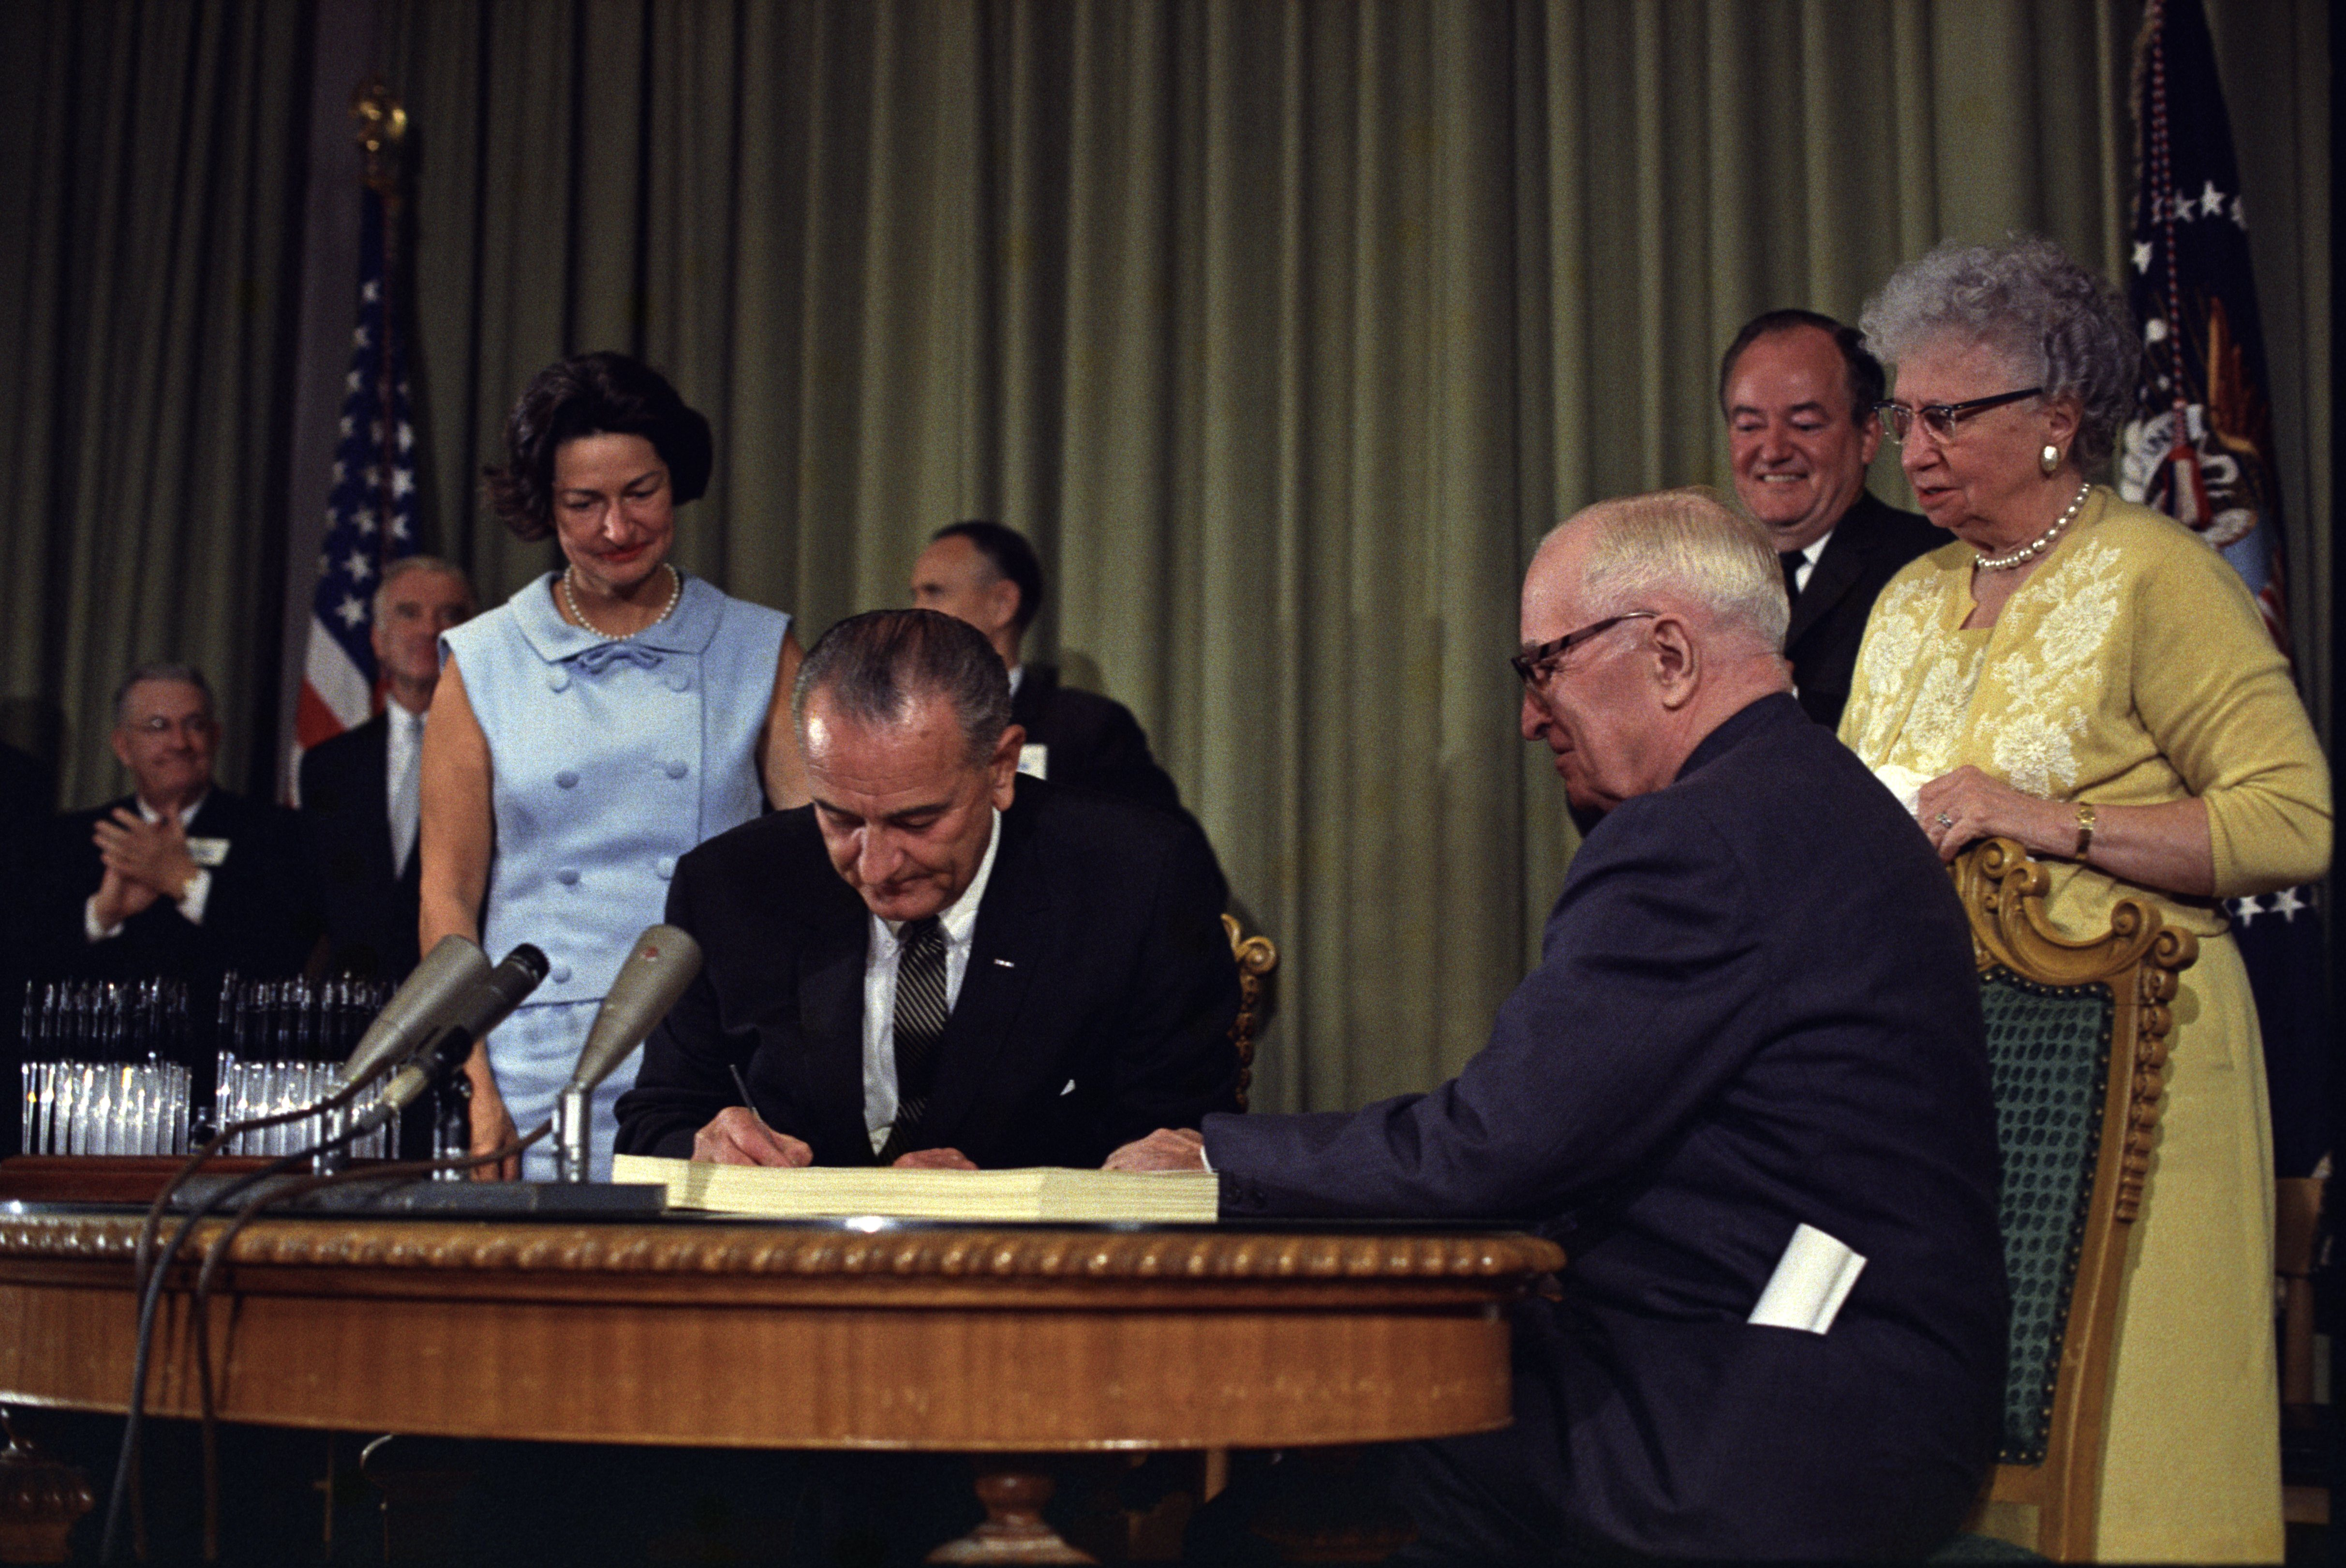 President Lyndon B. Johnson signing the Medicare Bill at the Harry S. Truman Library in Independence, Missouri.